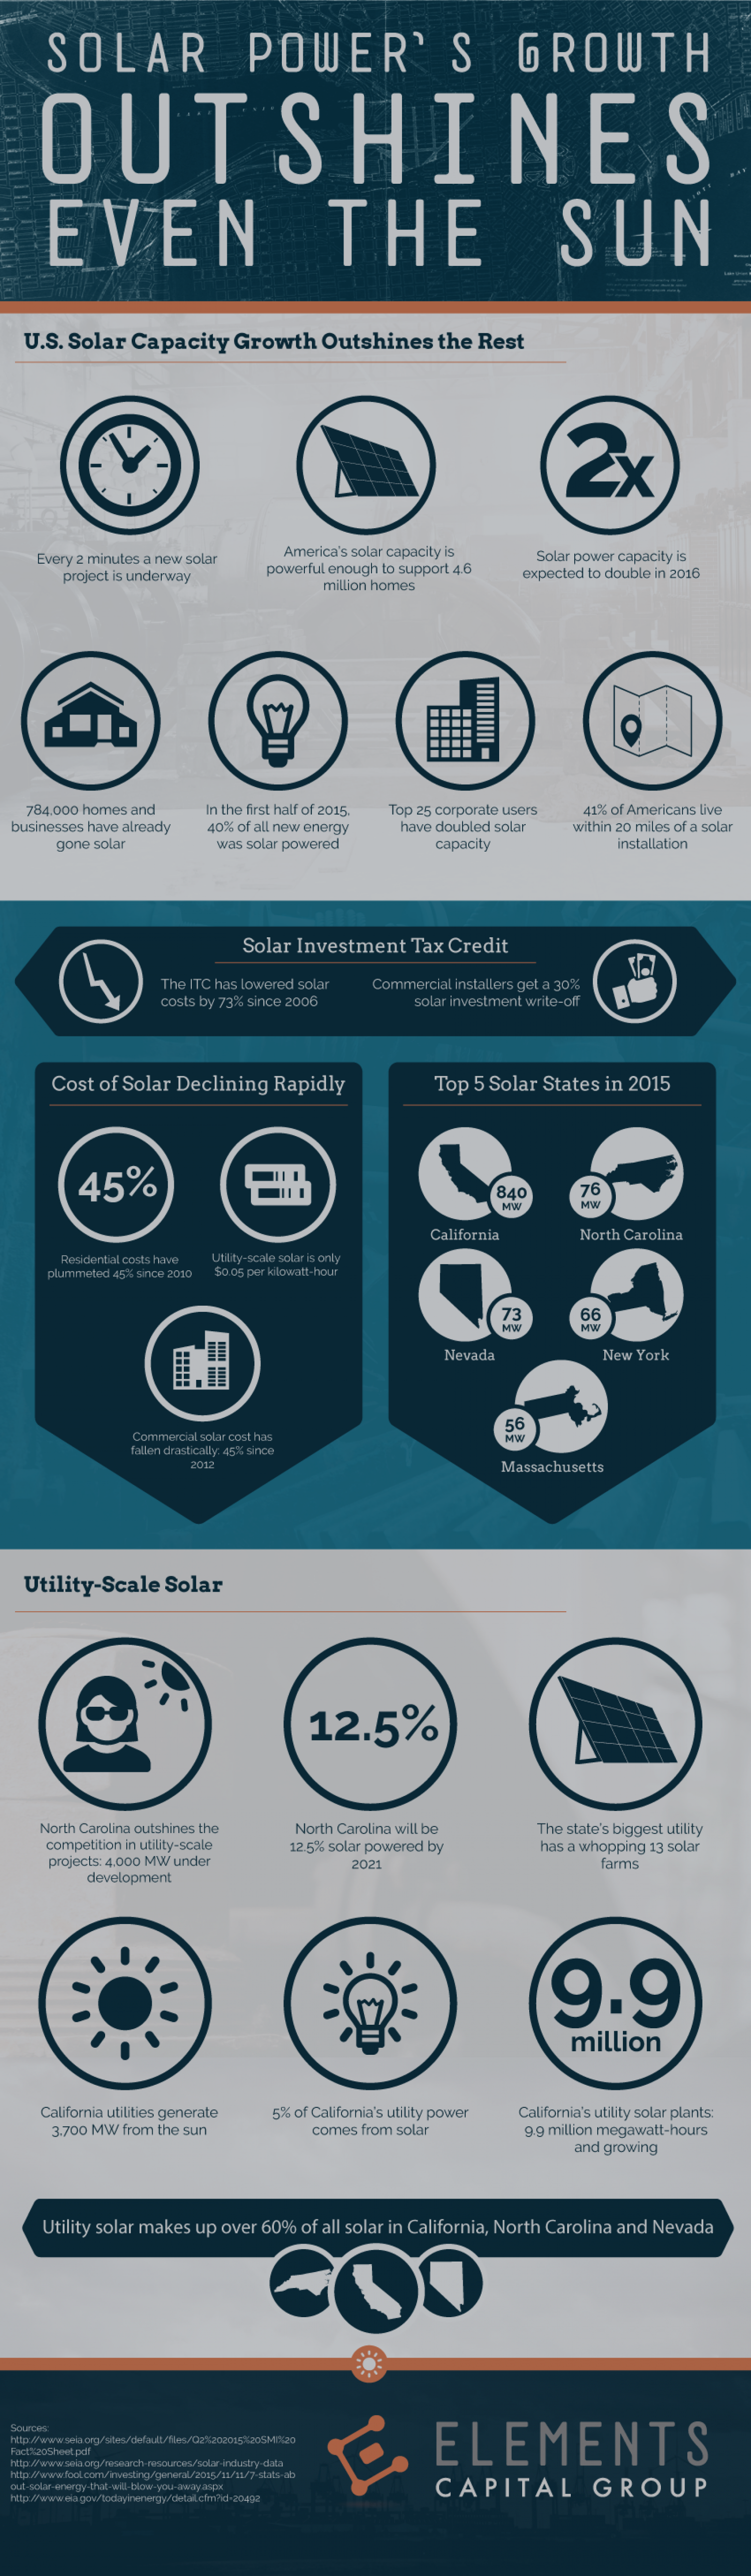 Solar Power's Growth Outshines Even the Sun Infographic